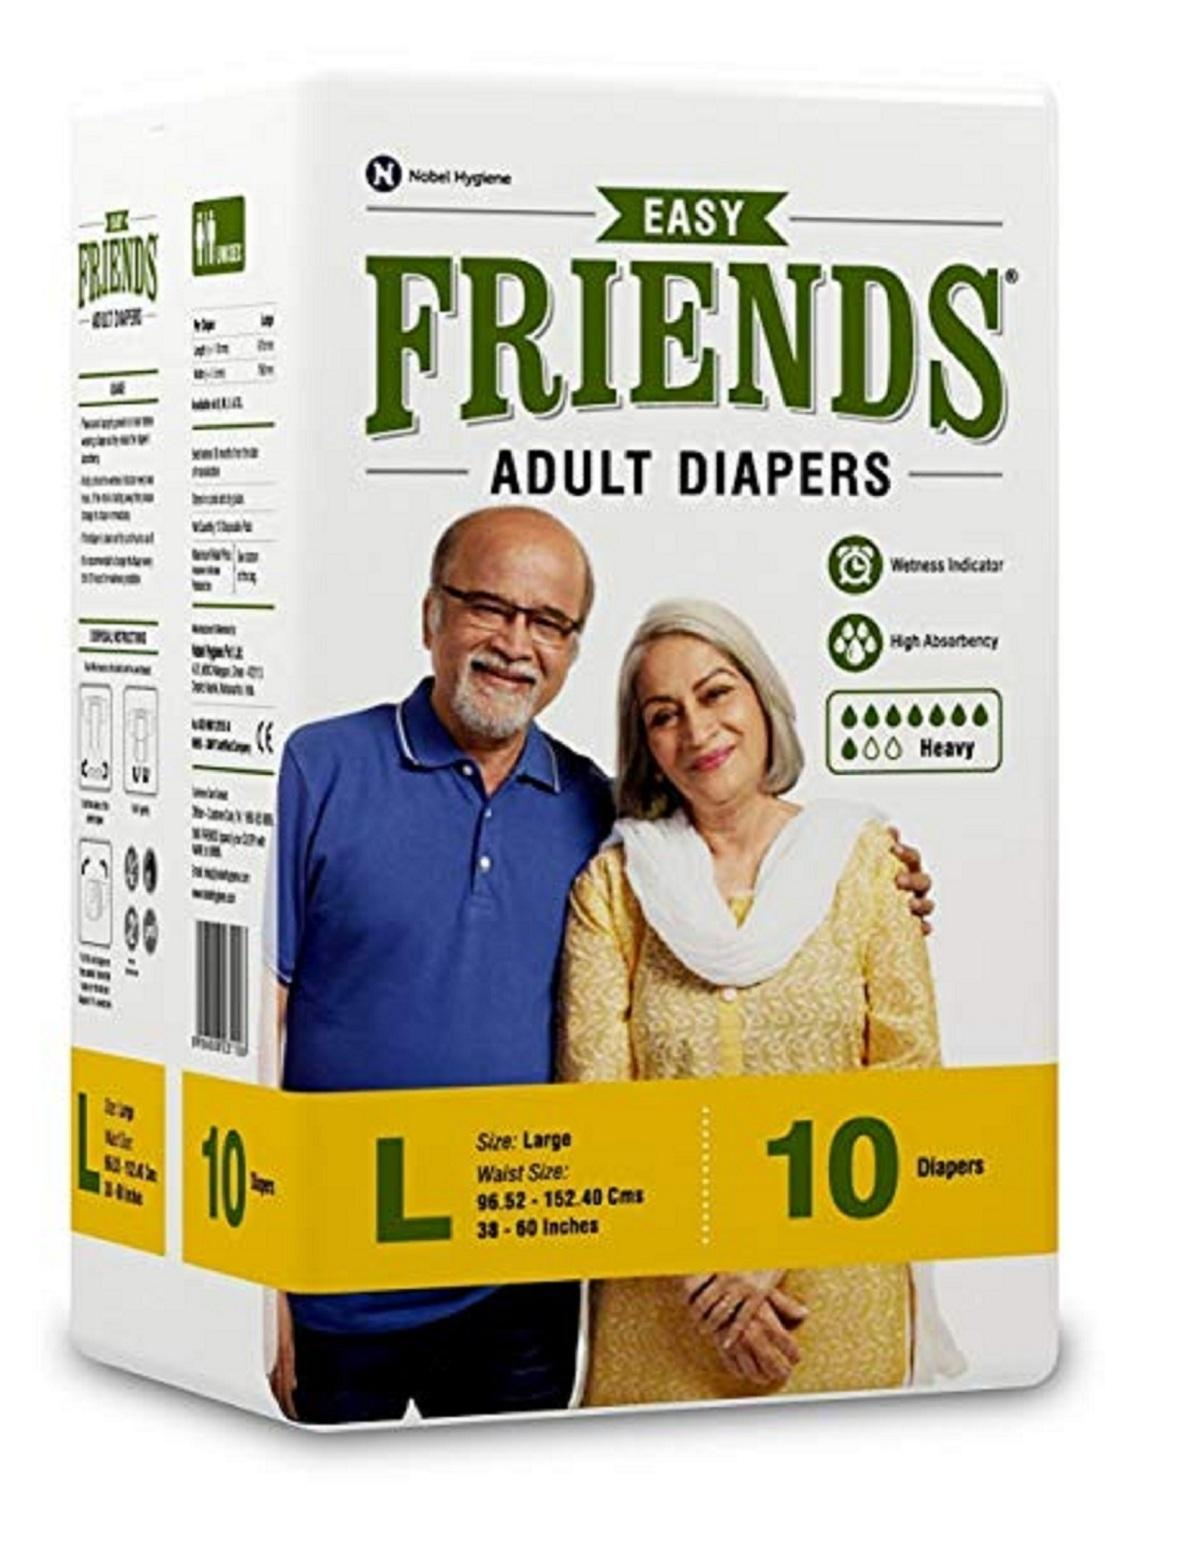 Sanitary Pads In Bangladesh At Best Price Laurier Healthy Skin Night 35cm 6s Easy Friends Adult Diapers 10 Pieces